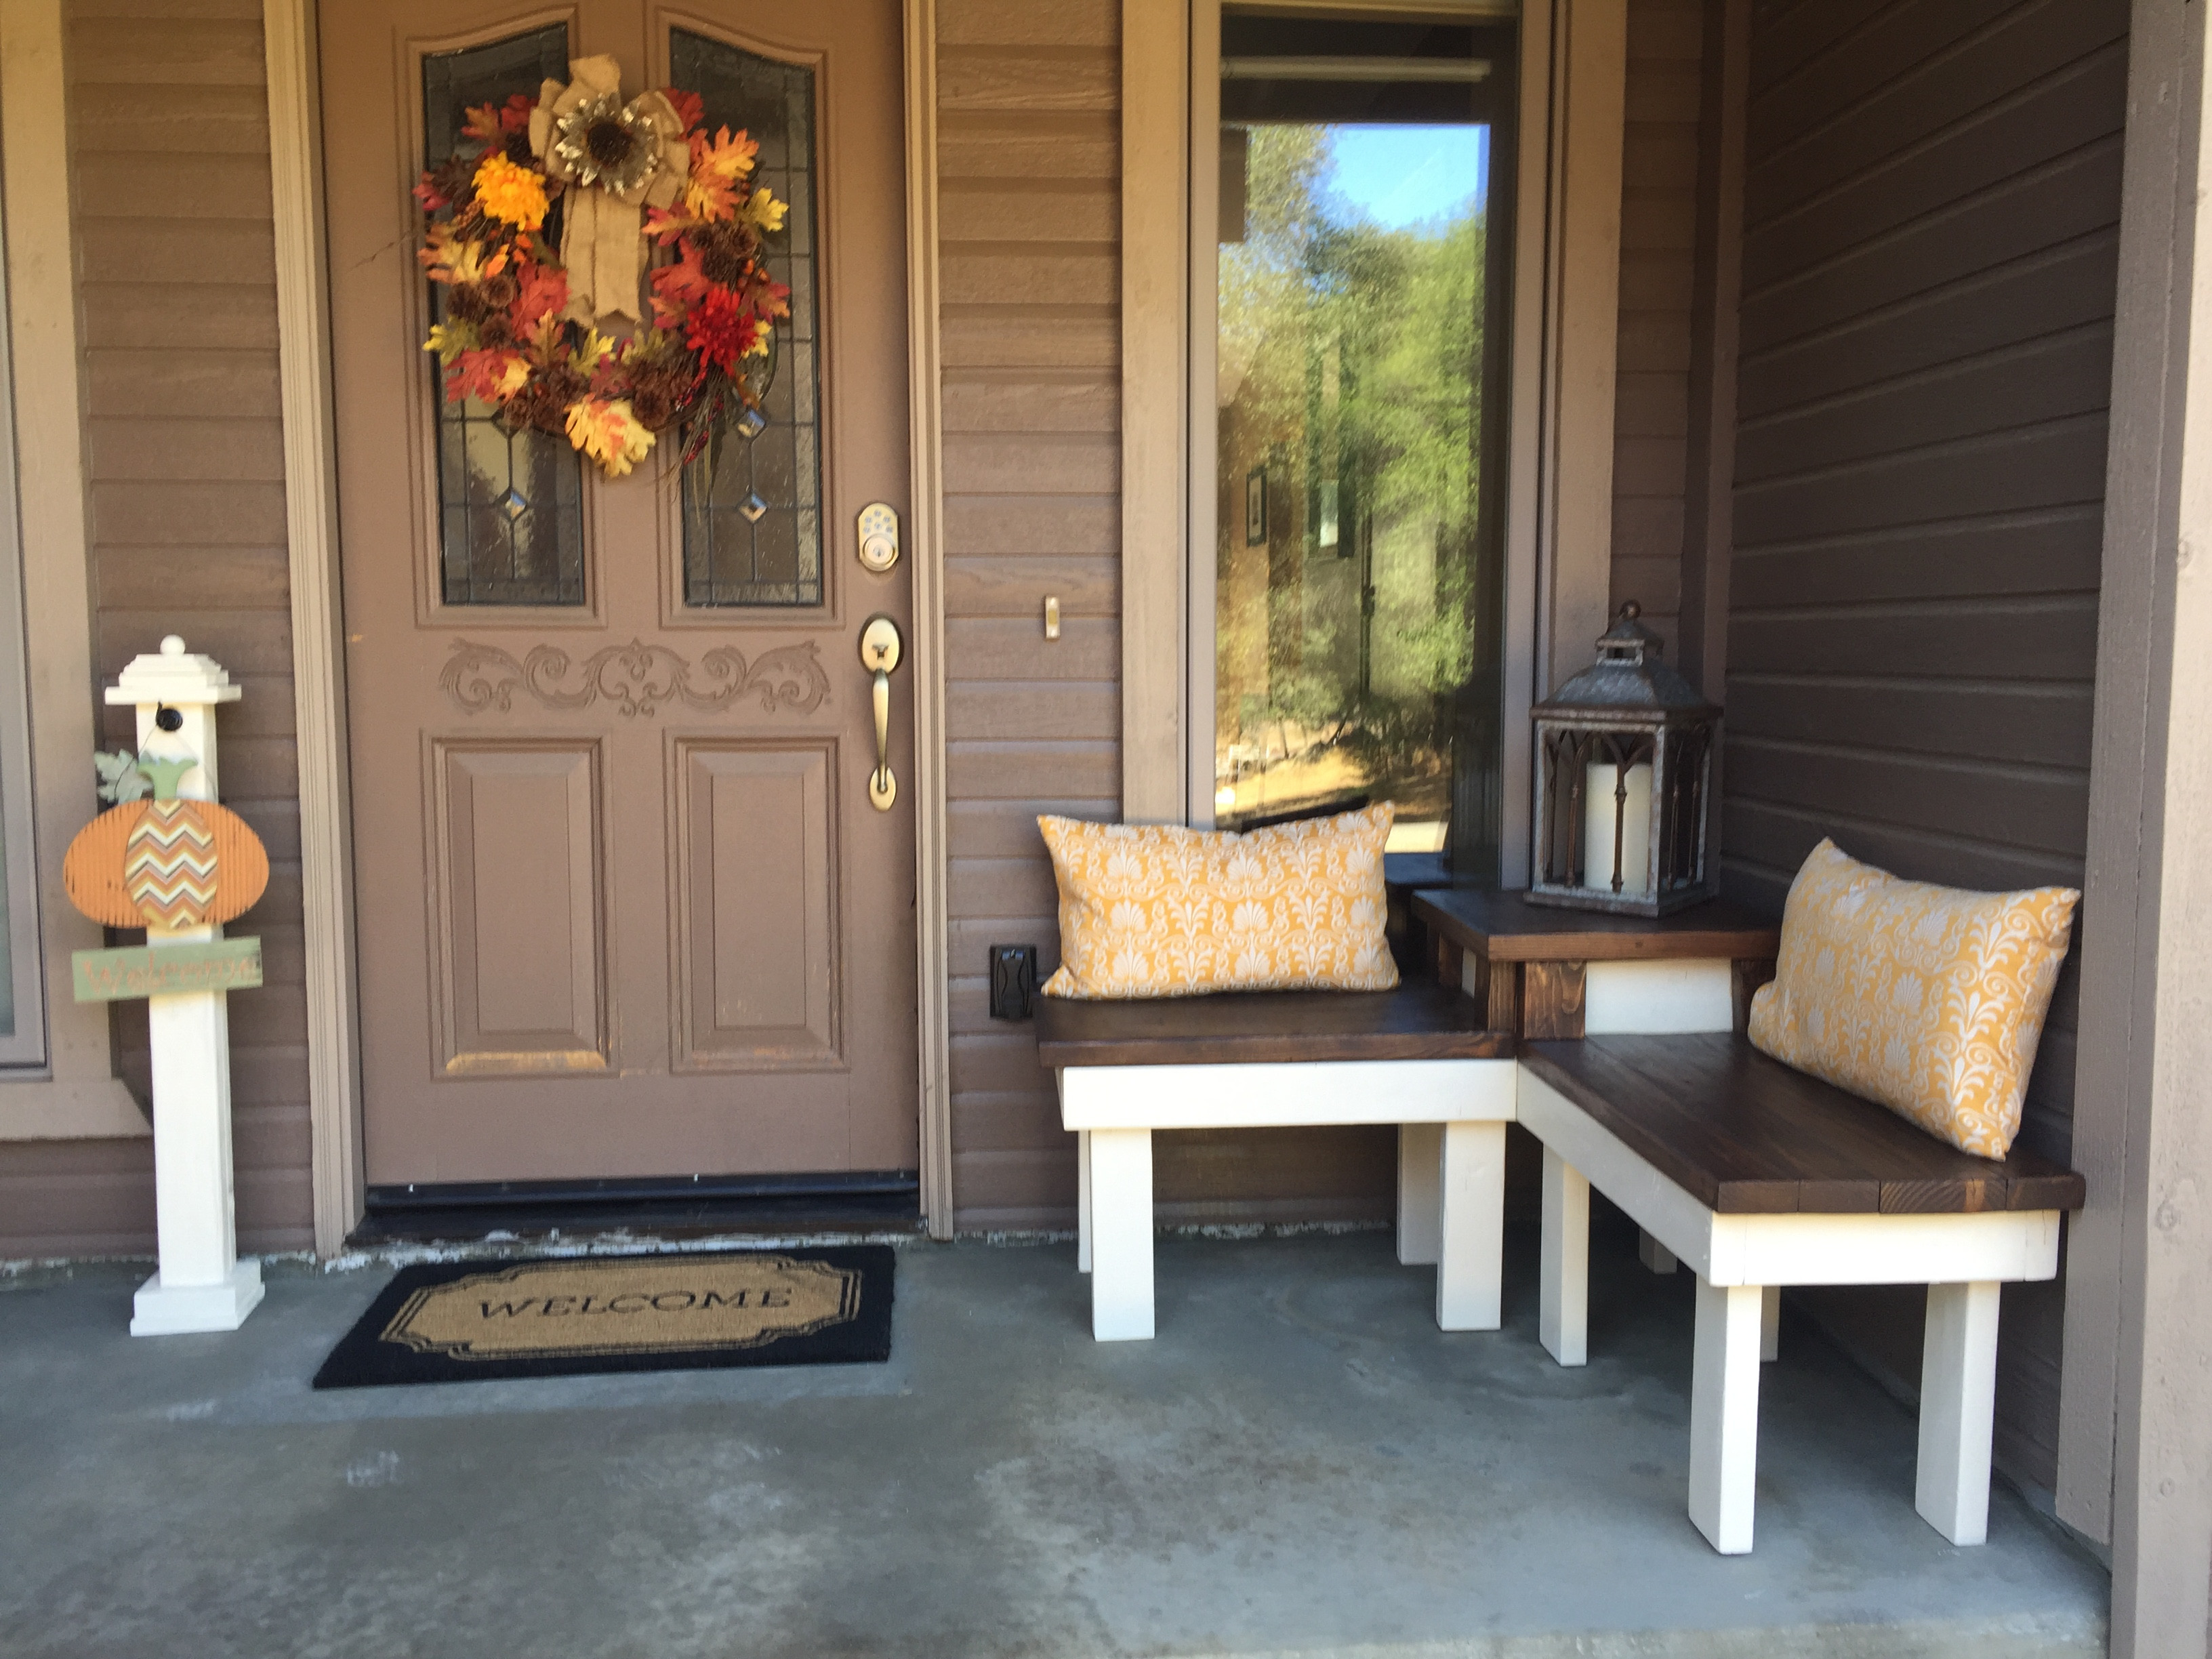 Best ideas about DIY Front Porch . Save or Pin Remodelaholic Now.